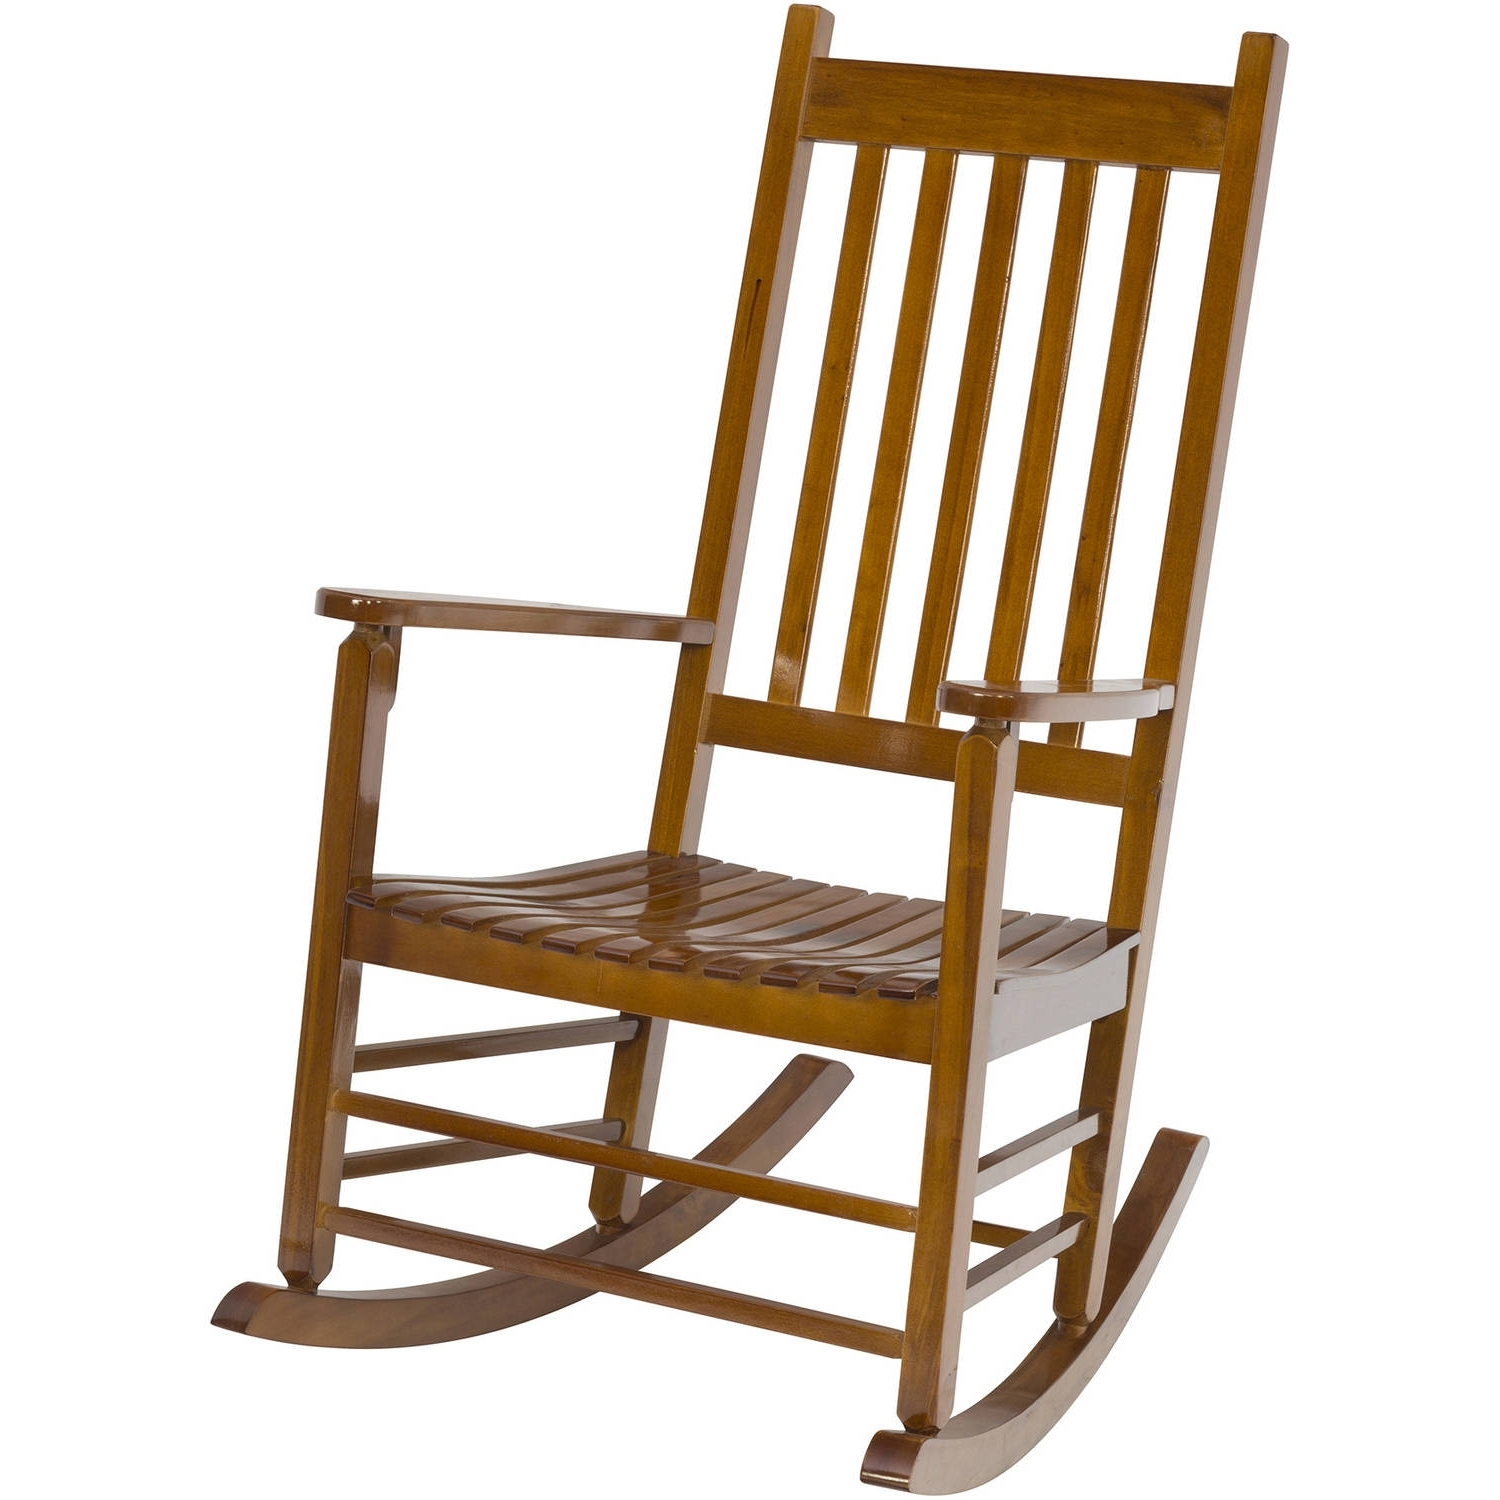 Home Design And Remodeling Ideas In Rocking Chairs At Target (View 17 of 20)